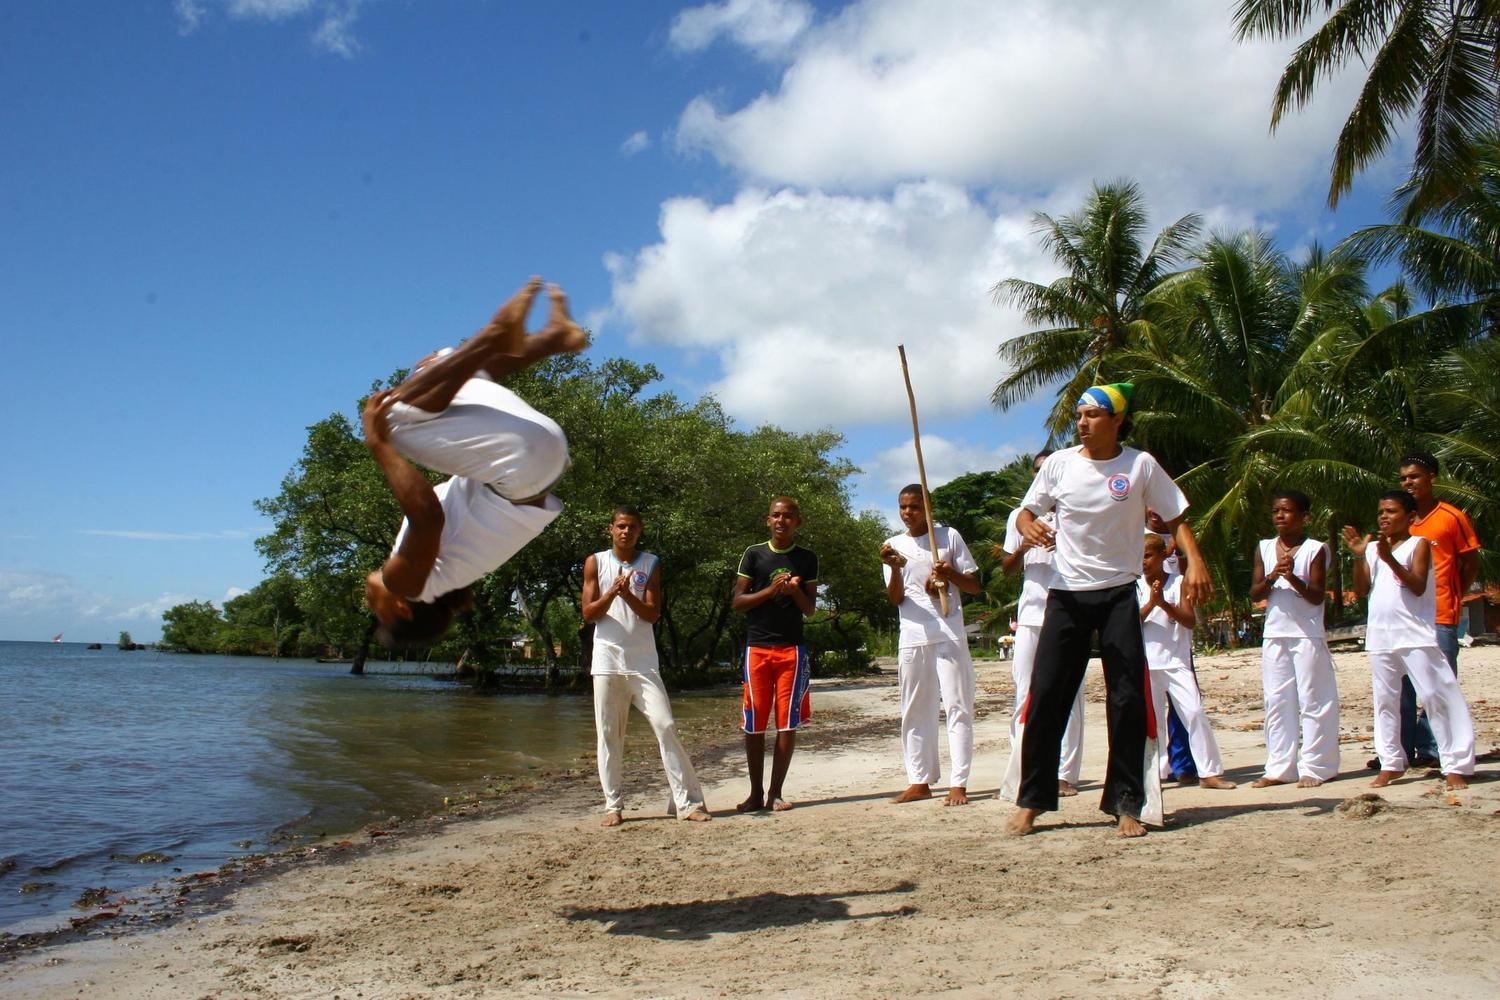 Capoeira practice on the beaches of Boipeba